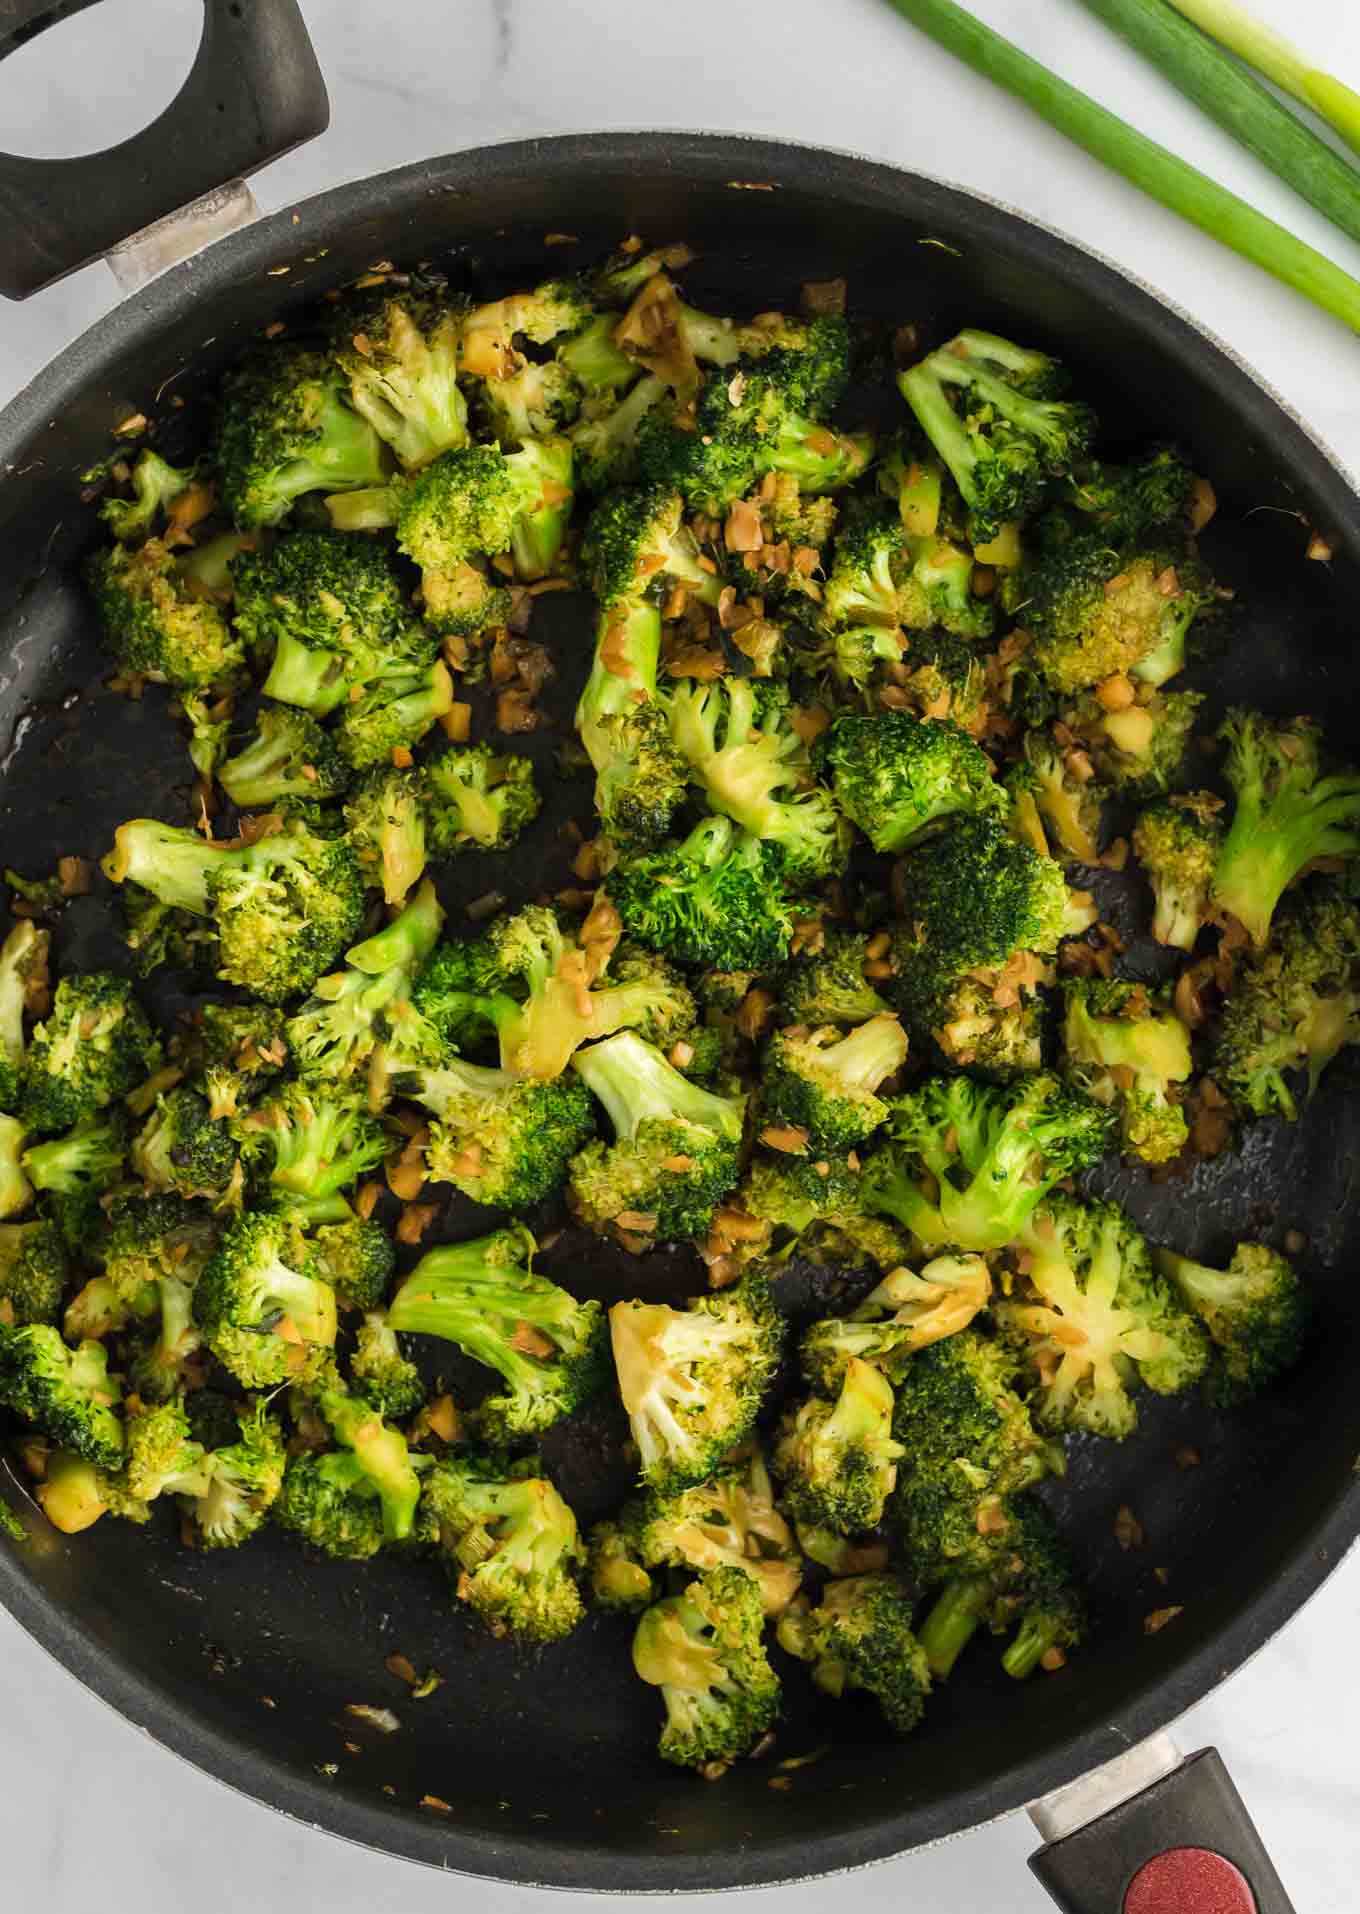 cooked broccoli in a skillet